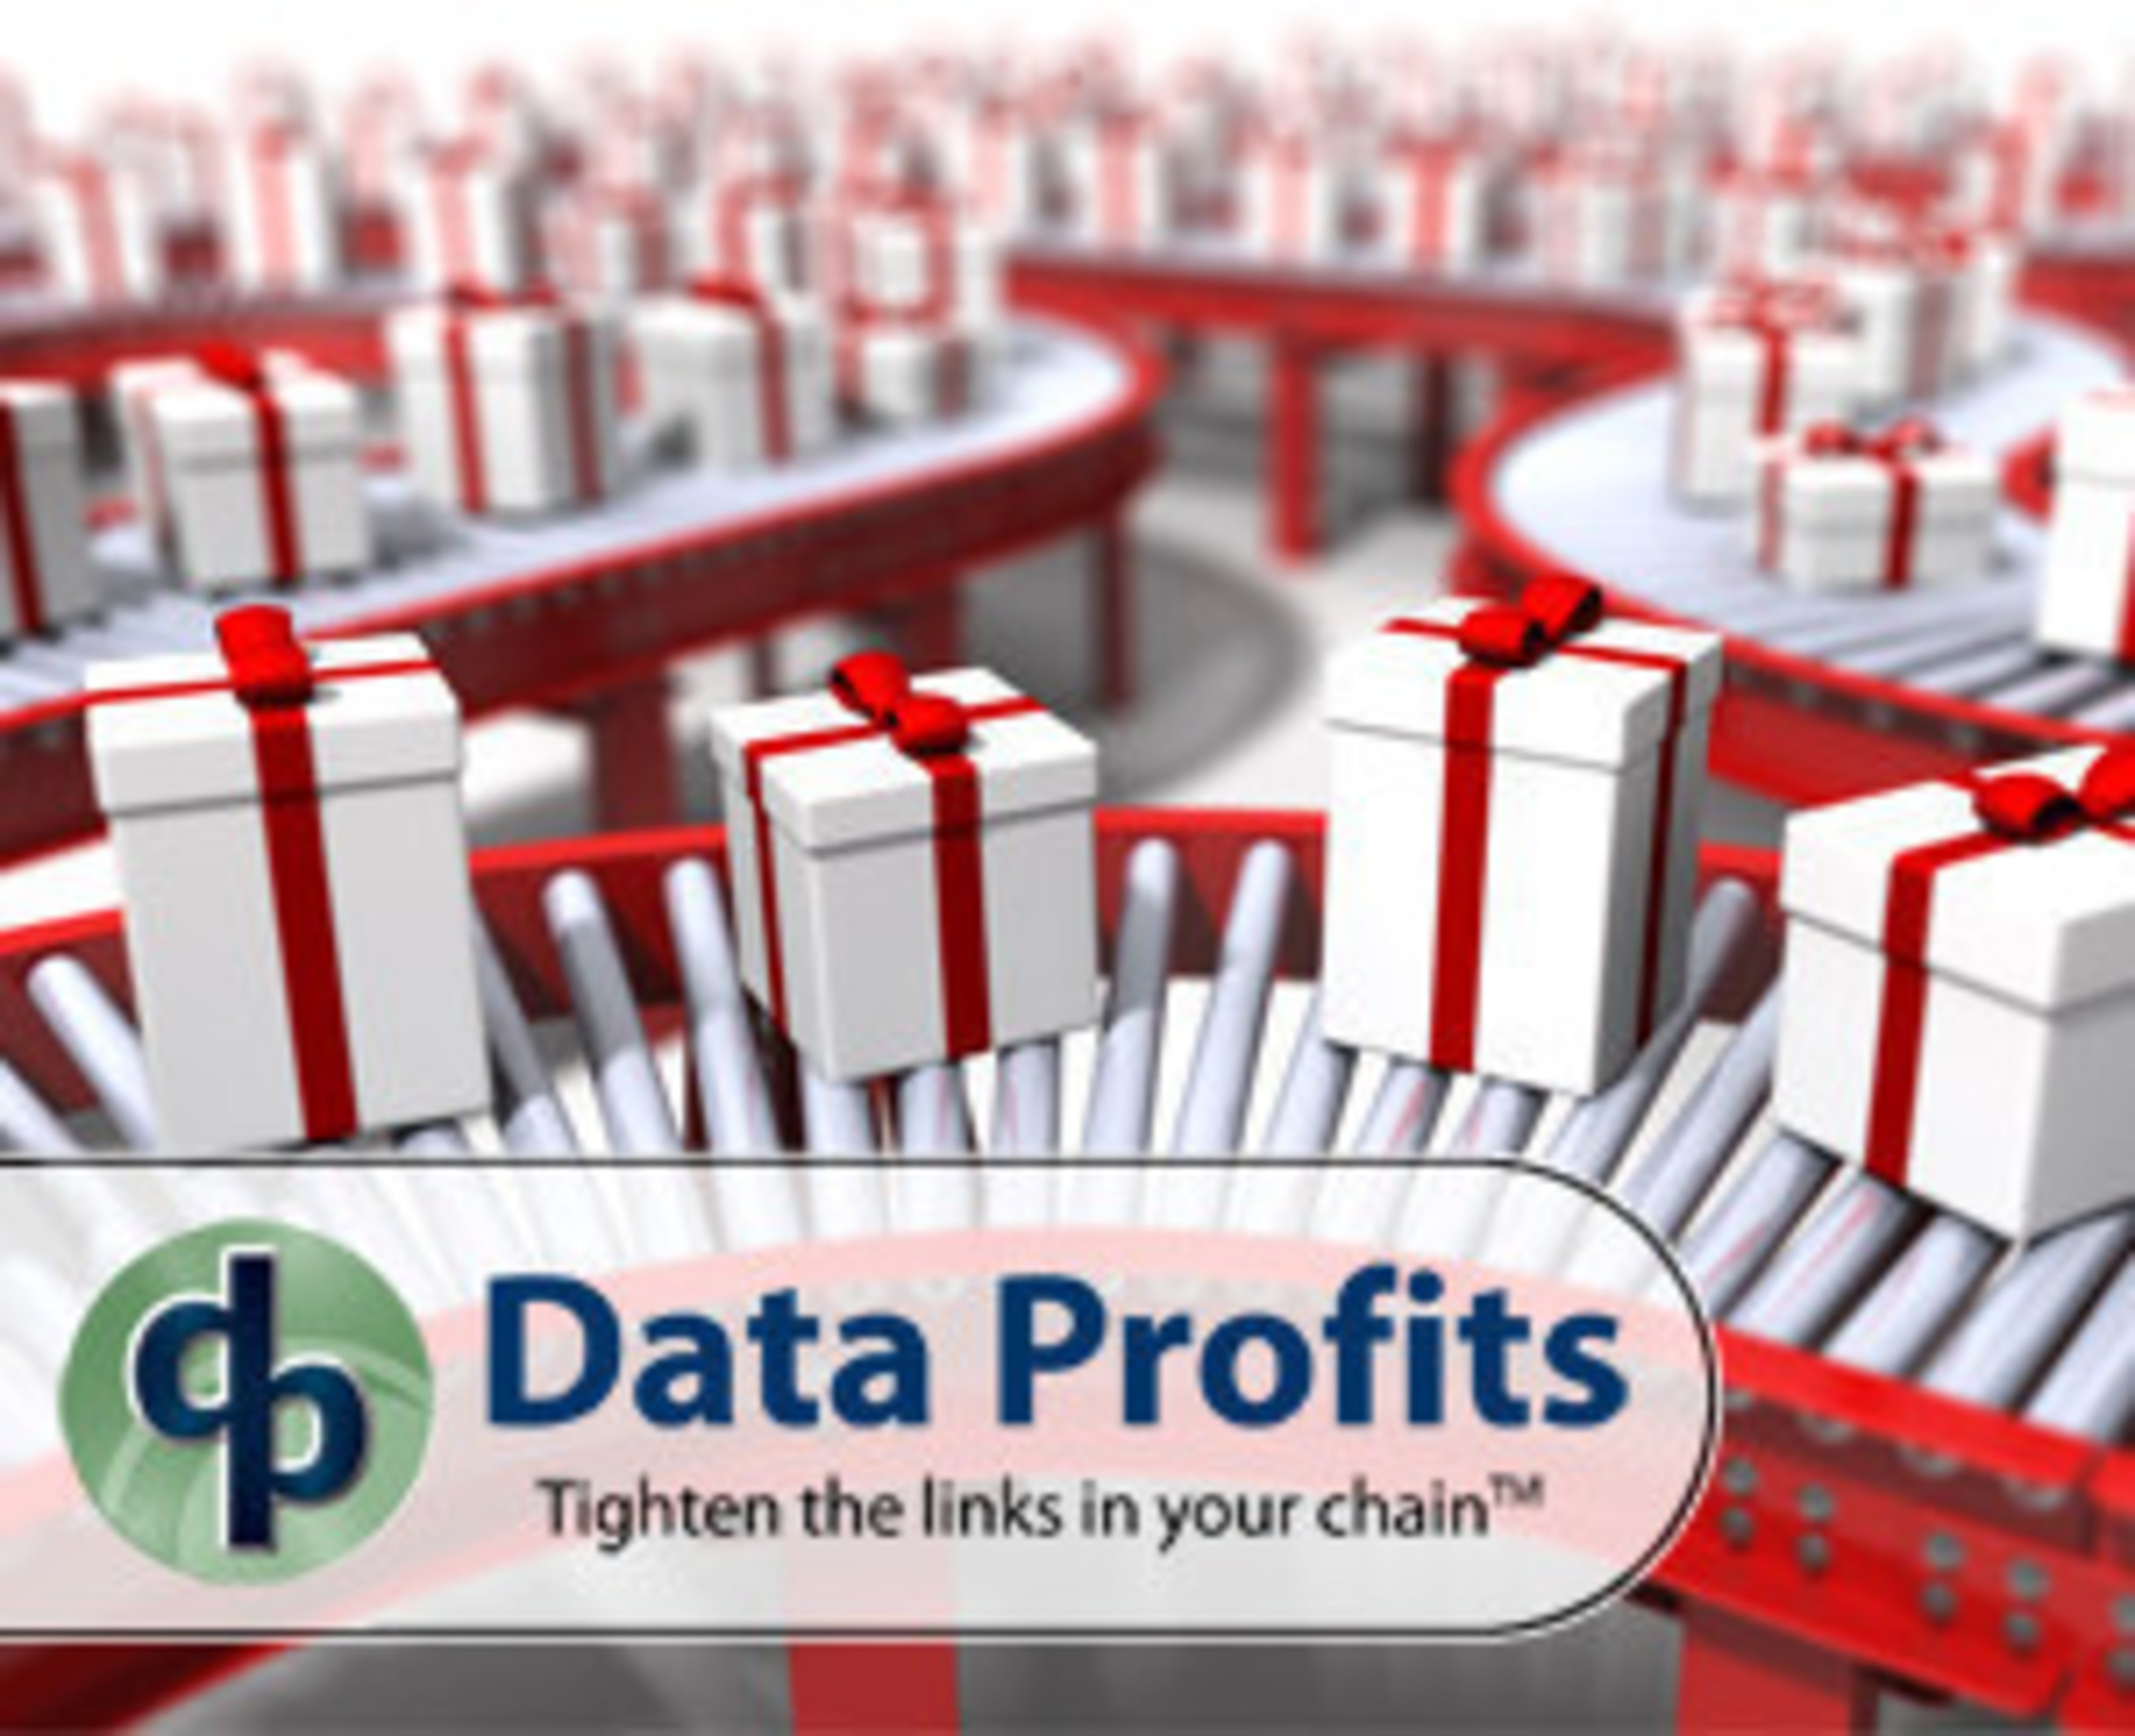 Data Profits Empowers a Demand-driven Strategy for Retailers Gearing up for Holiday Shopping